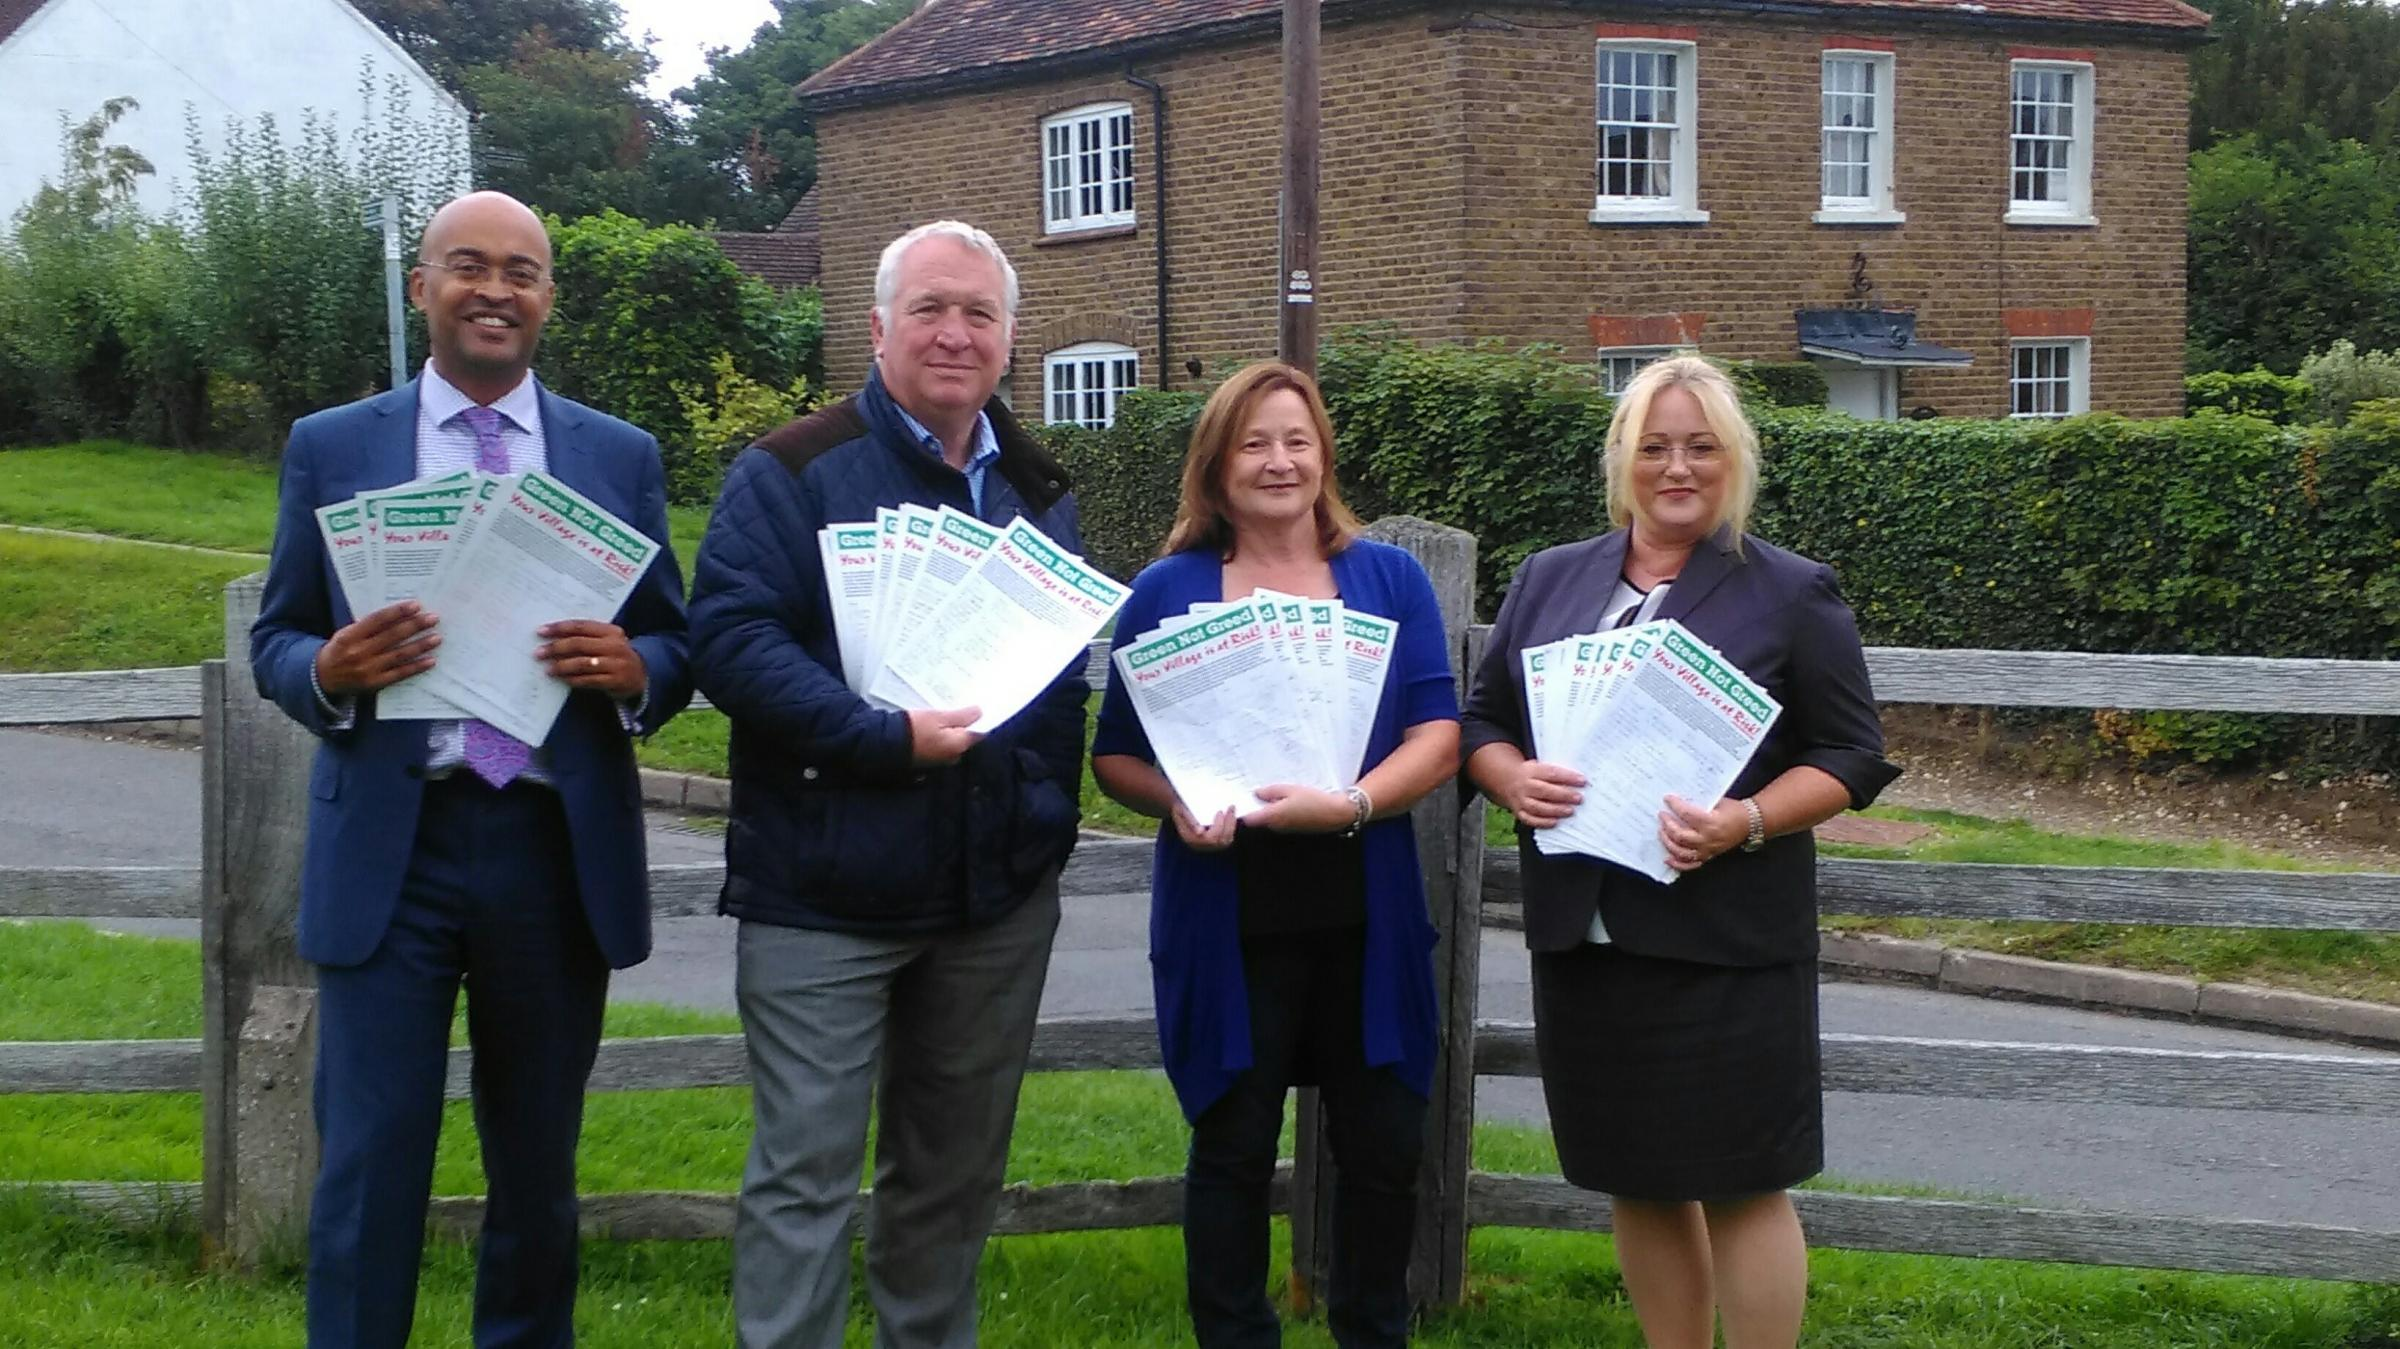 Campaigners hand over their petition sheets to Hemel Hempstead MP Mike Penning (second left)